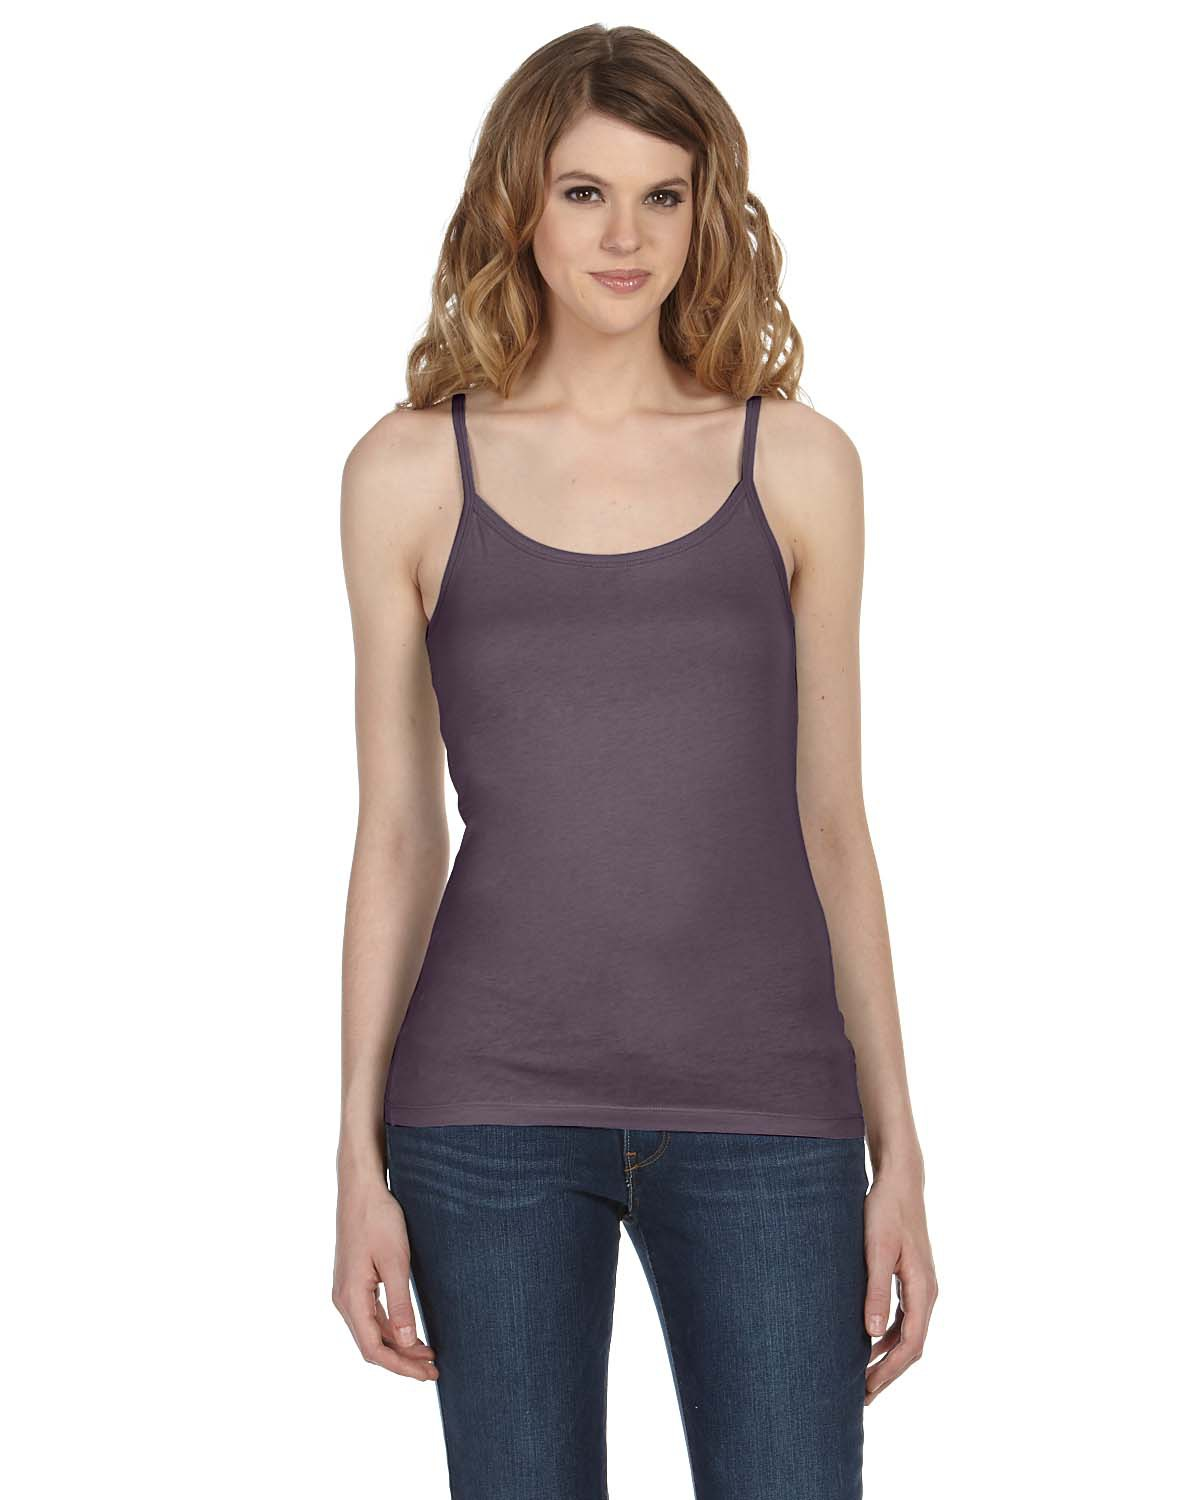 Bella B8111  Women's Sheer Jersey Longer Length Scoopneck Tank Top